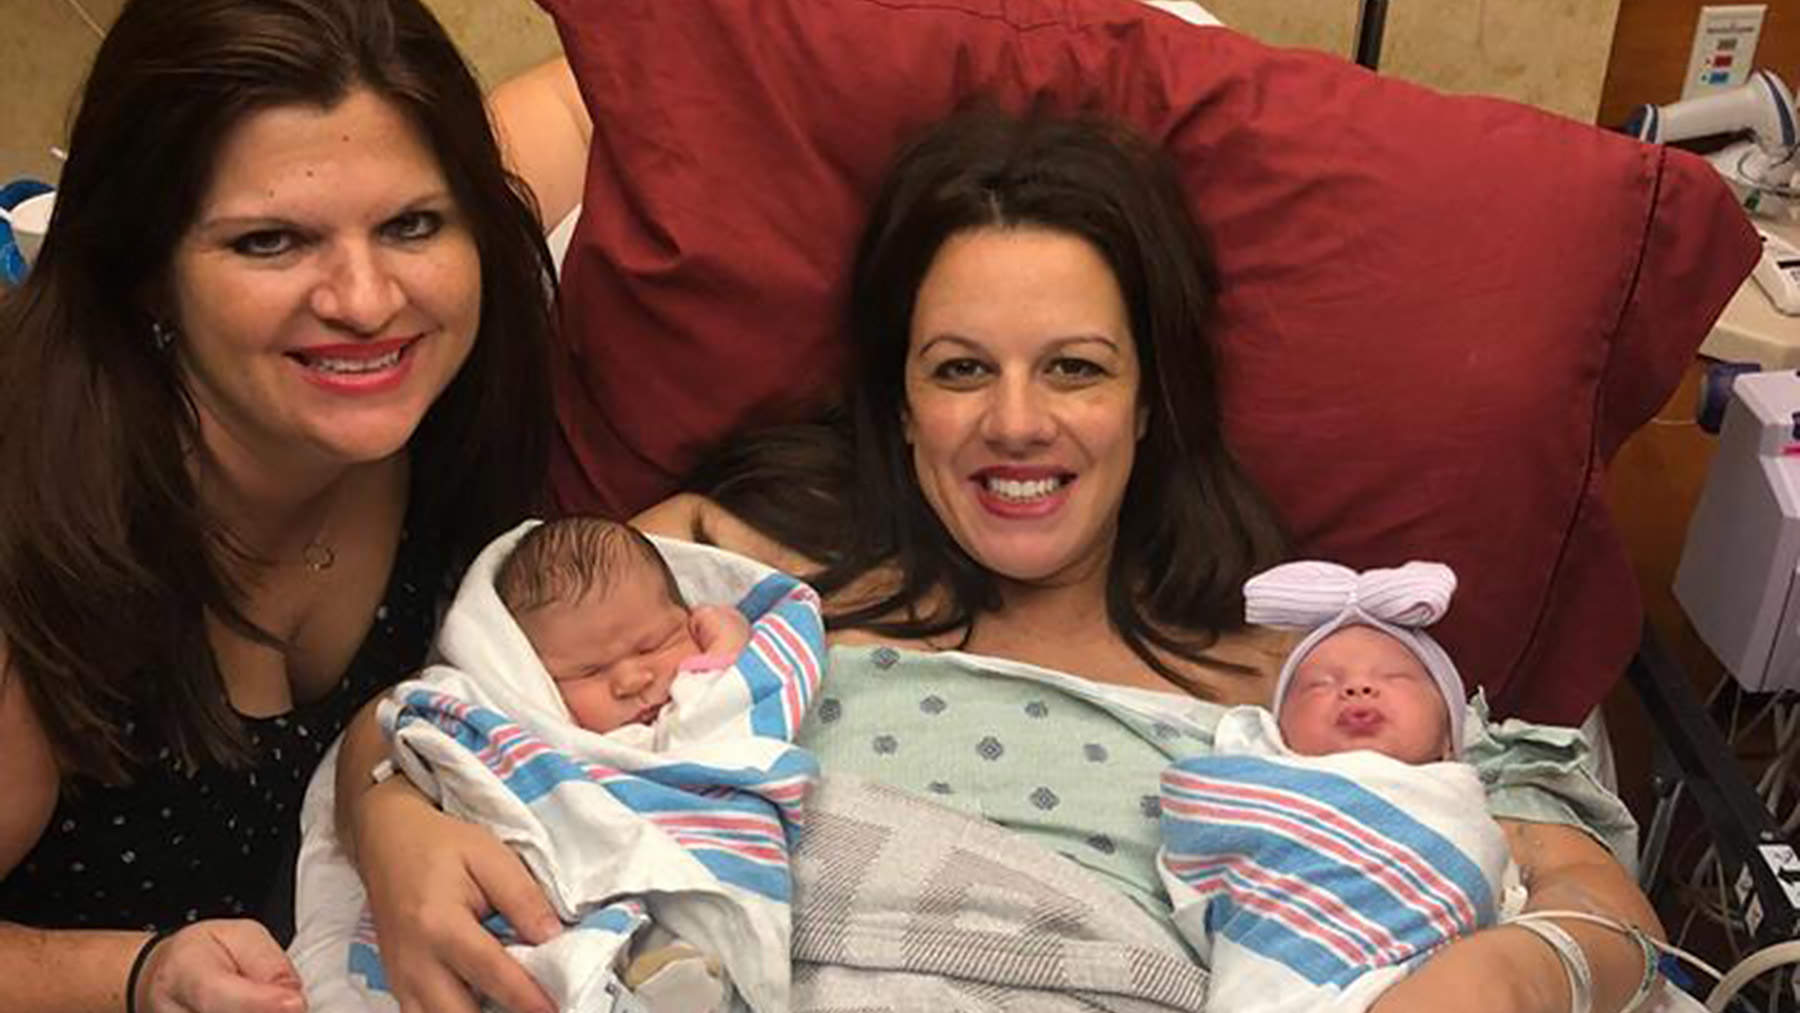 Mississippi Woman and Wife Pregnant at Same Time Give Birth 2 Days Apart